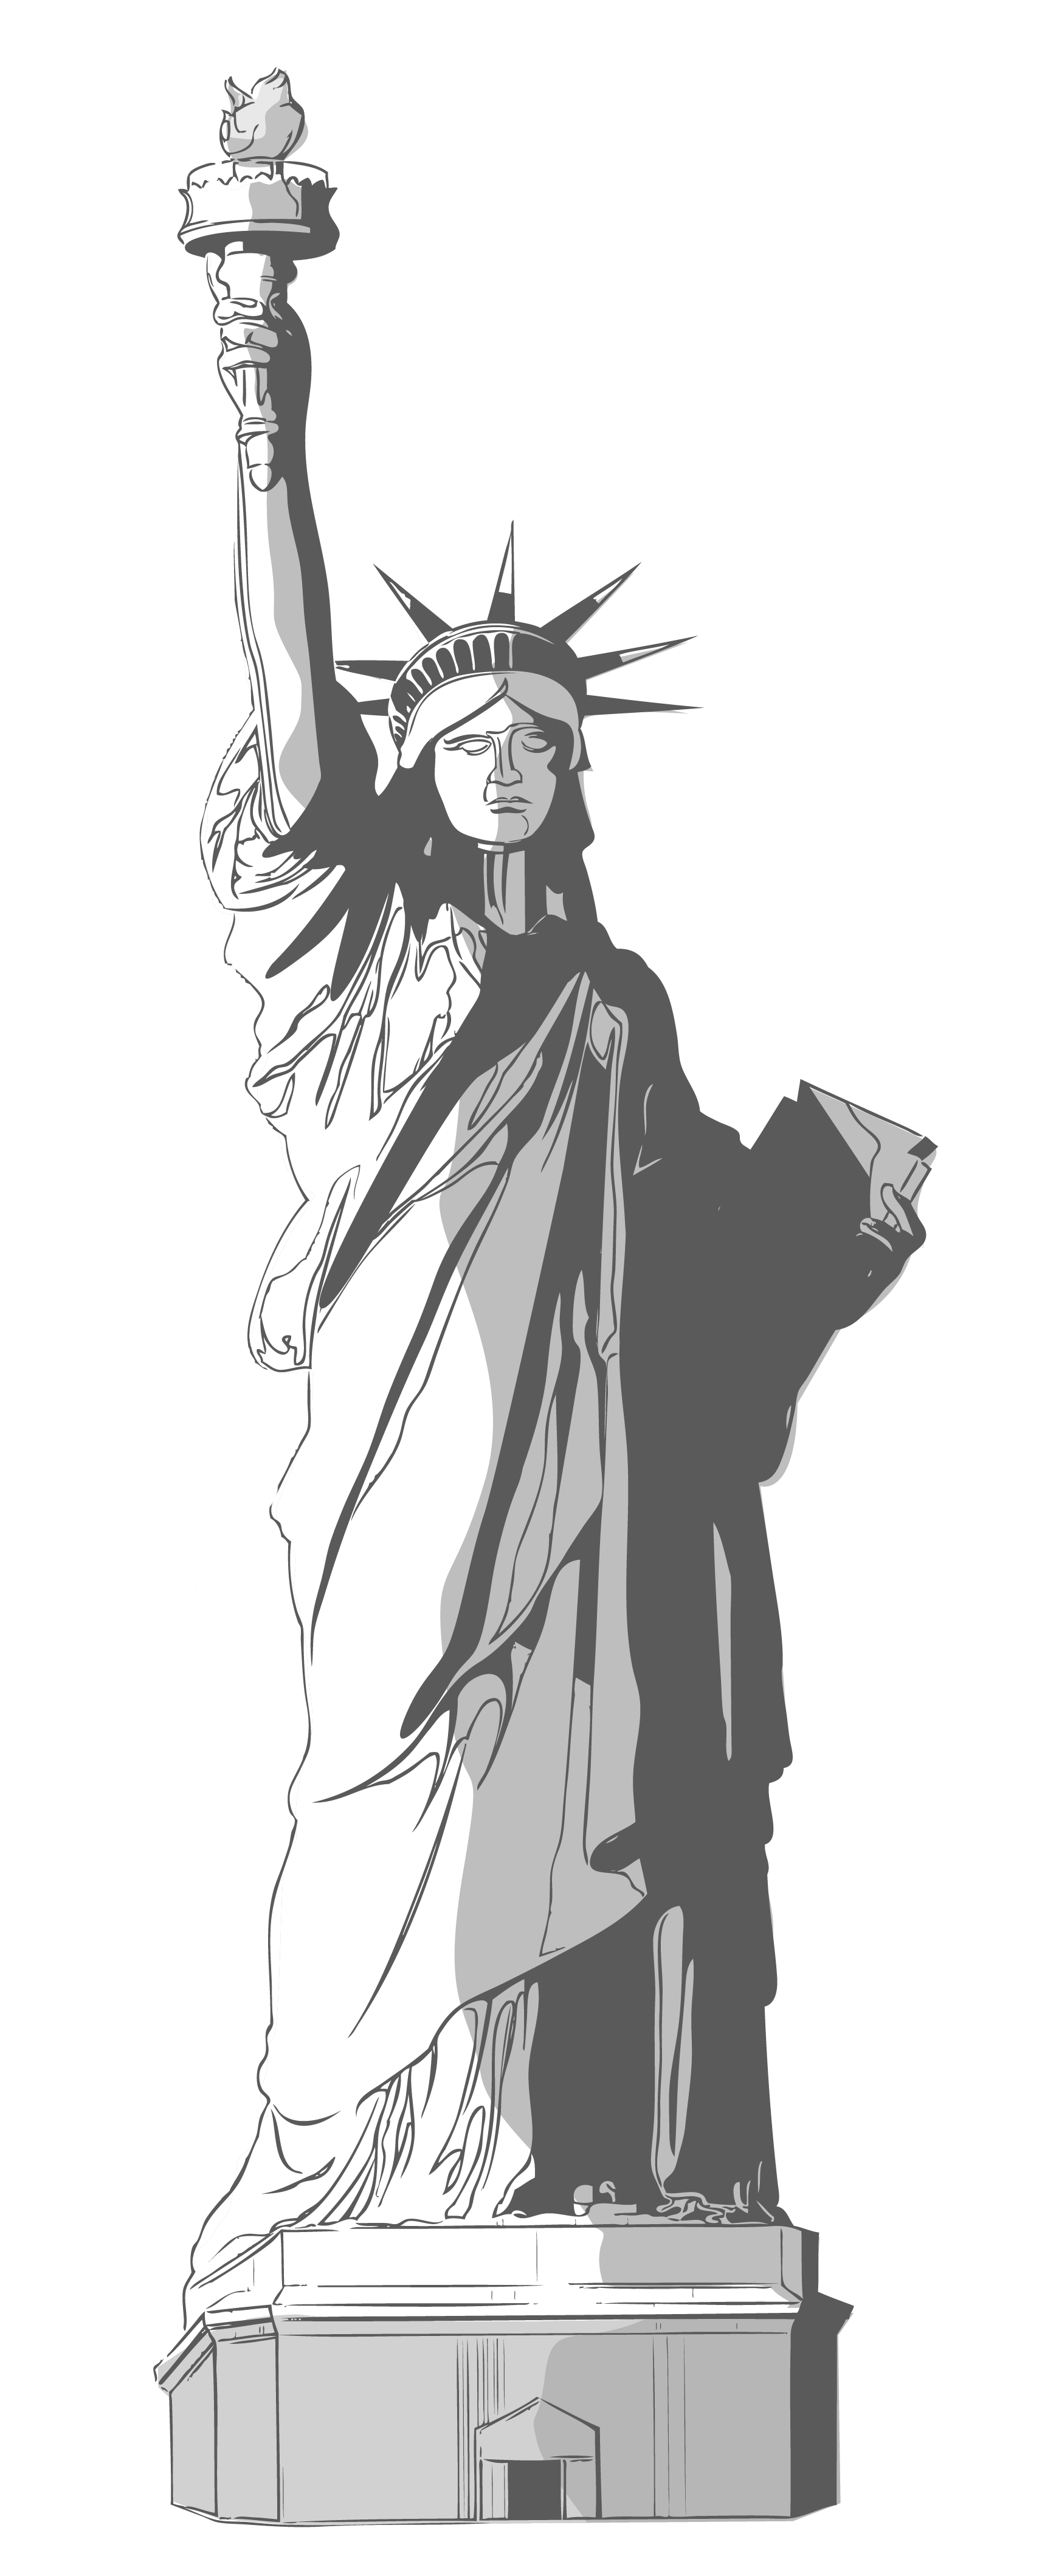 Statue clipart #5, Download drawings